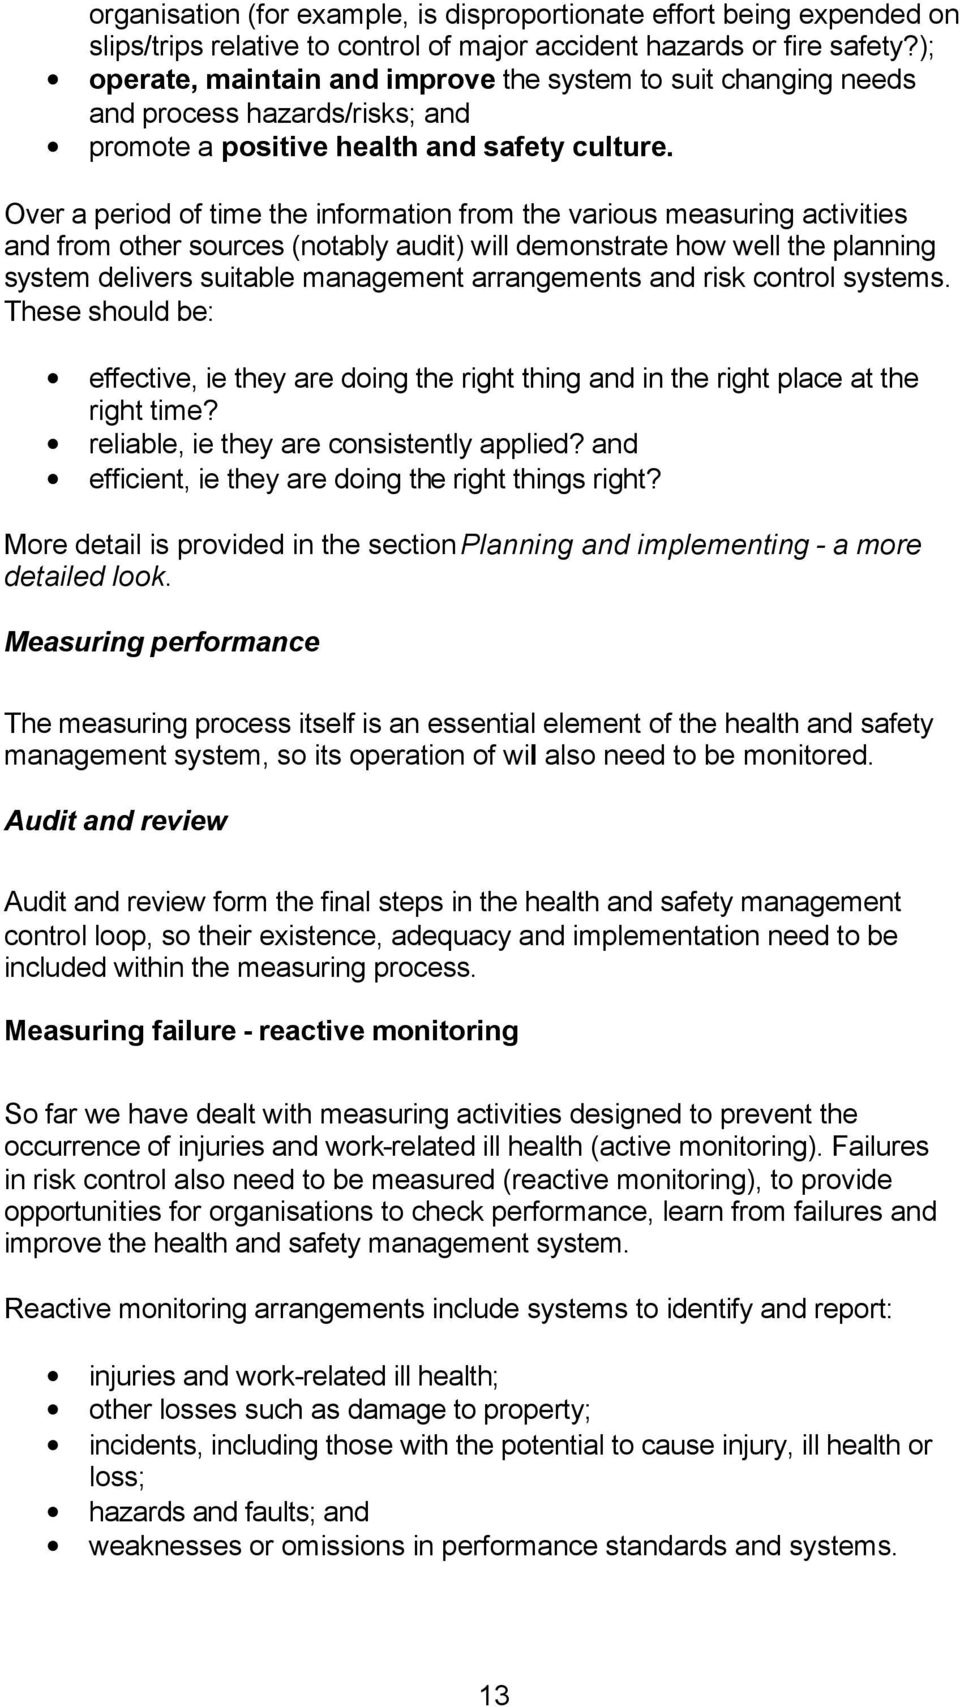 Over a period of time the information from the various measuring activities and from other sources (notably audit) will demonstrate how well the planning system delivers suitable management